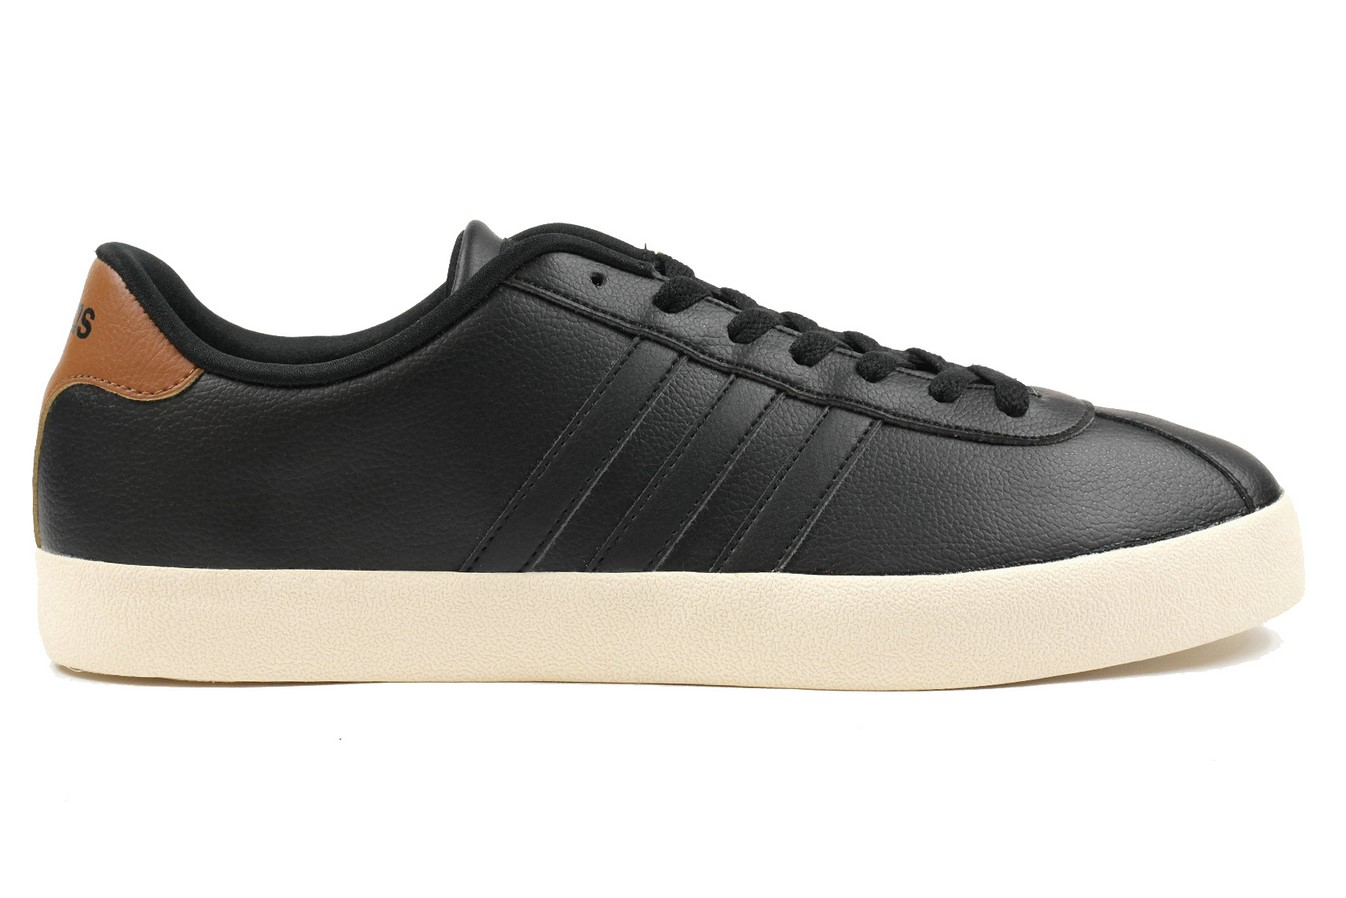 Adidas Vl Court Vulc Heren sneakers